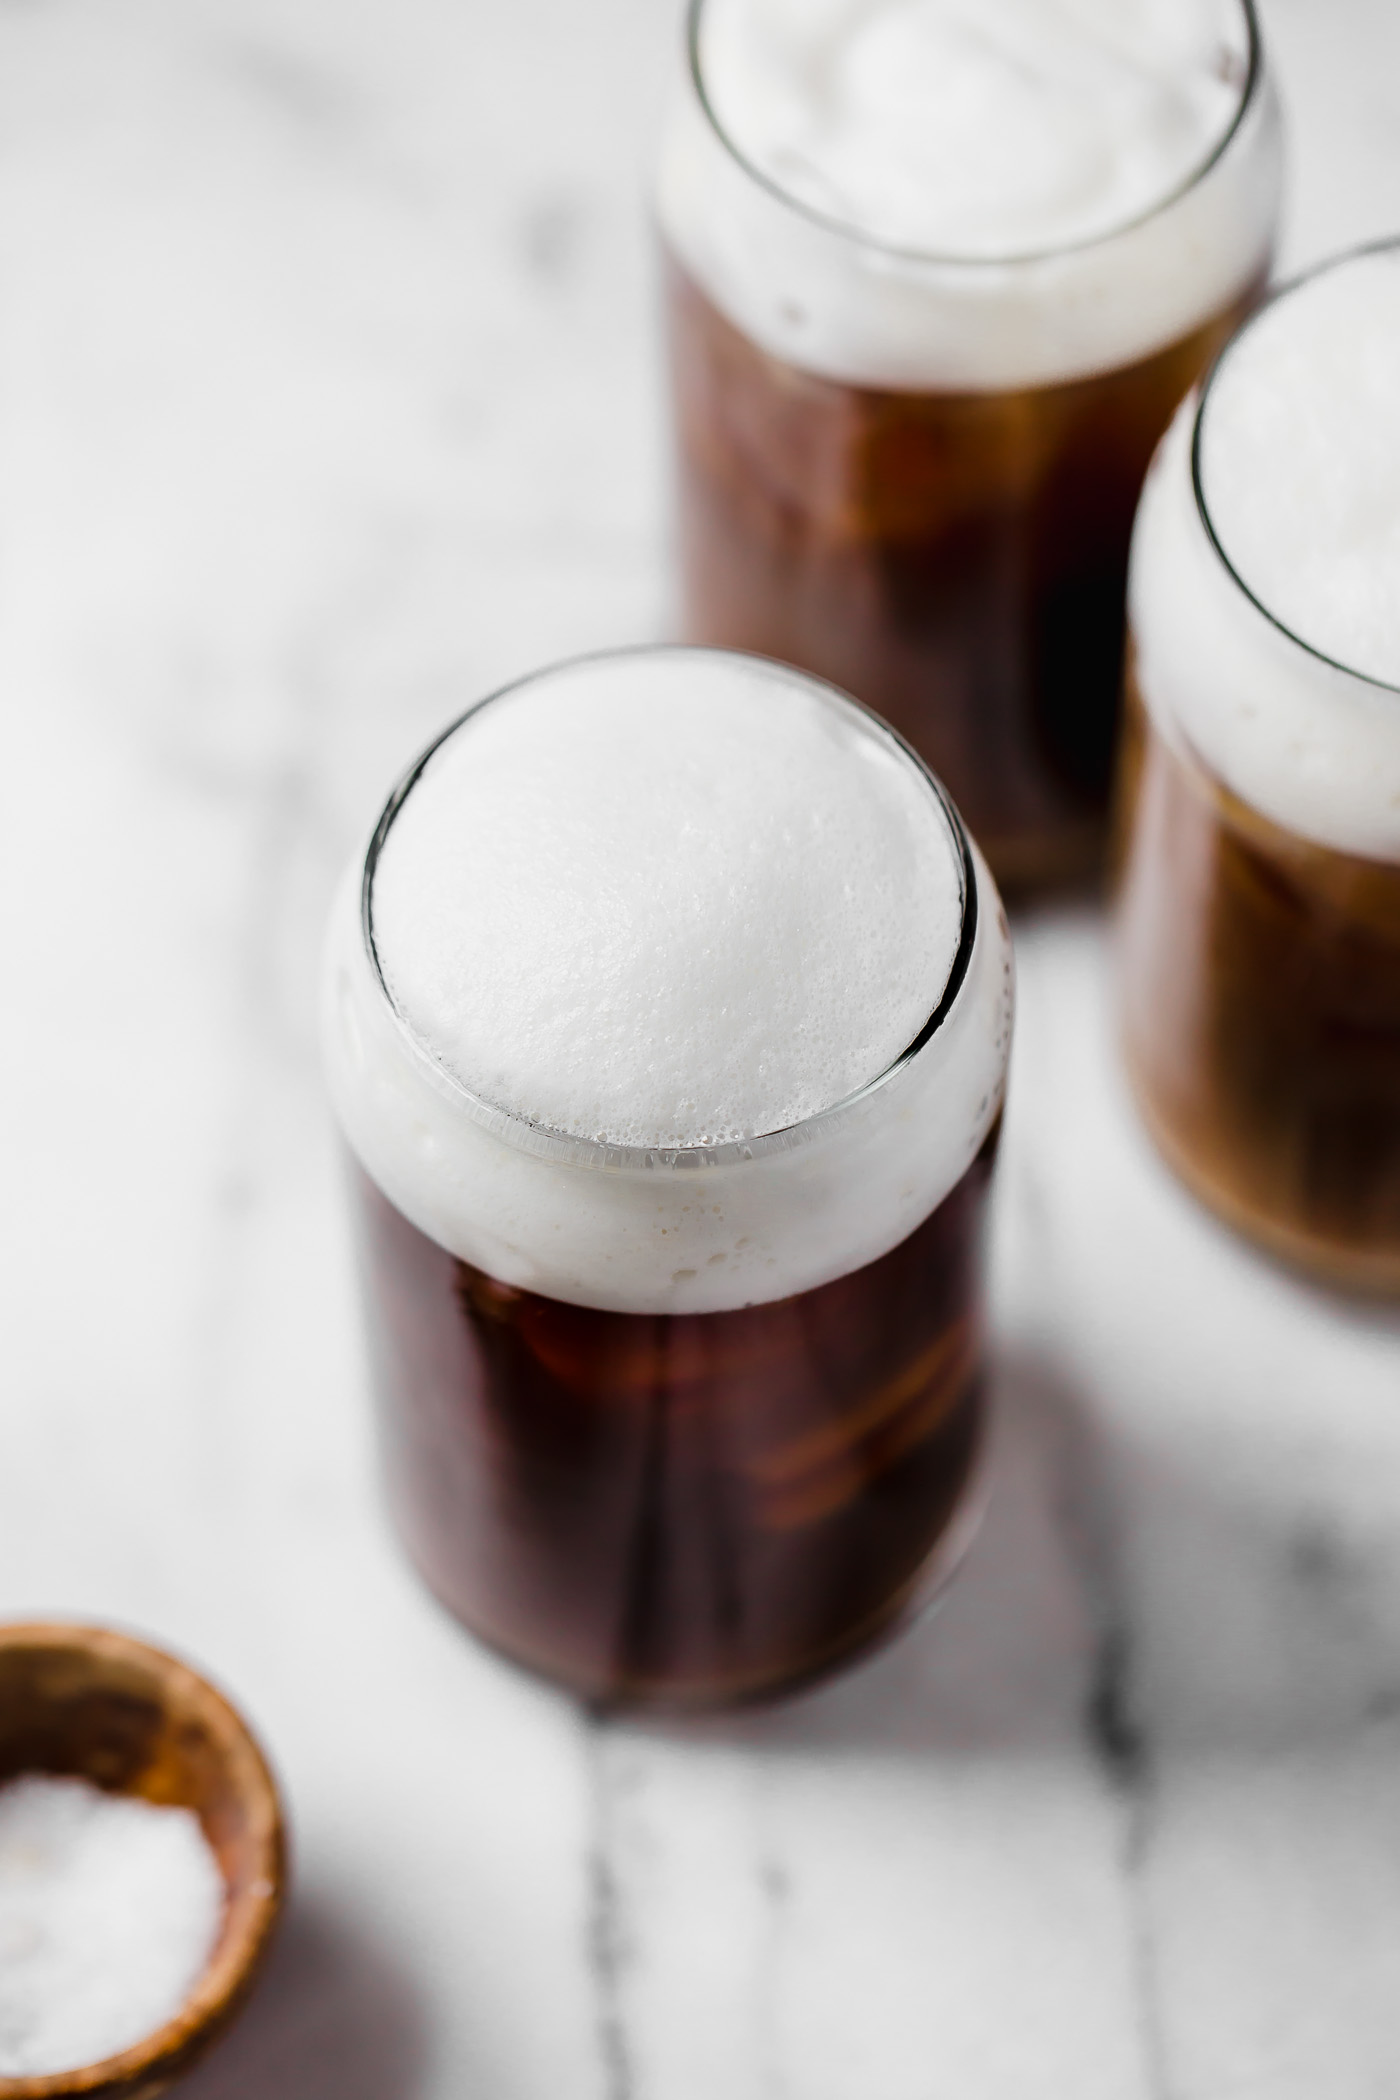 an easy & natural recipe for homemade starbucks salted cream cold foam cold brew with only 4-ingredients! cold brew coffee, lightly sweetened with maple syrup, topped with a creamy salty-sweet cold foam, this salted cream cold foam cold brew coffee is the perfect salty-sweet coffee drink! #playswellwithbutter #saltedcreamcoldfoamcoldbrewcoffee #coldbrew #coldbrewcoffeerecipe #icedcoffee #easycoffeerecipe #starbucksdrinks #starbucksrecipe